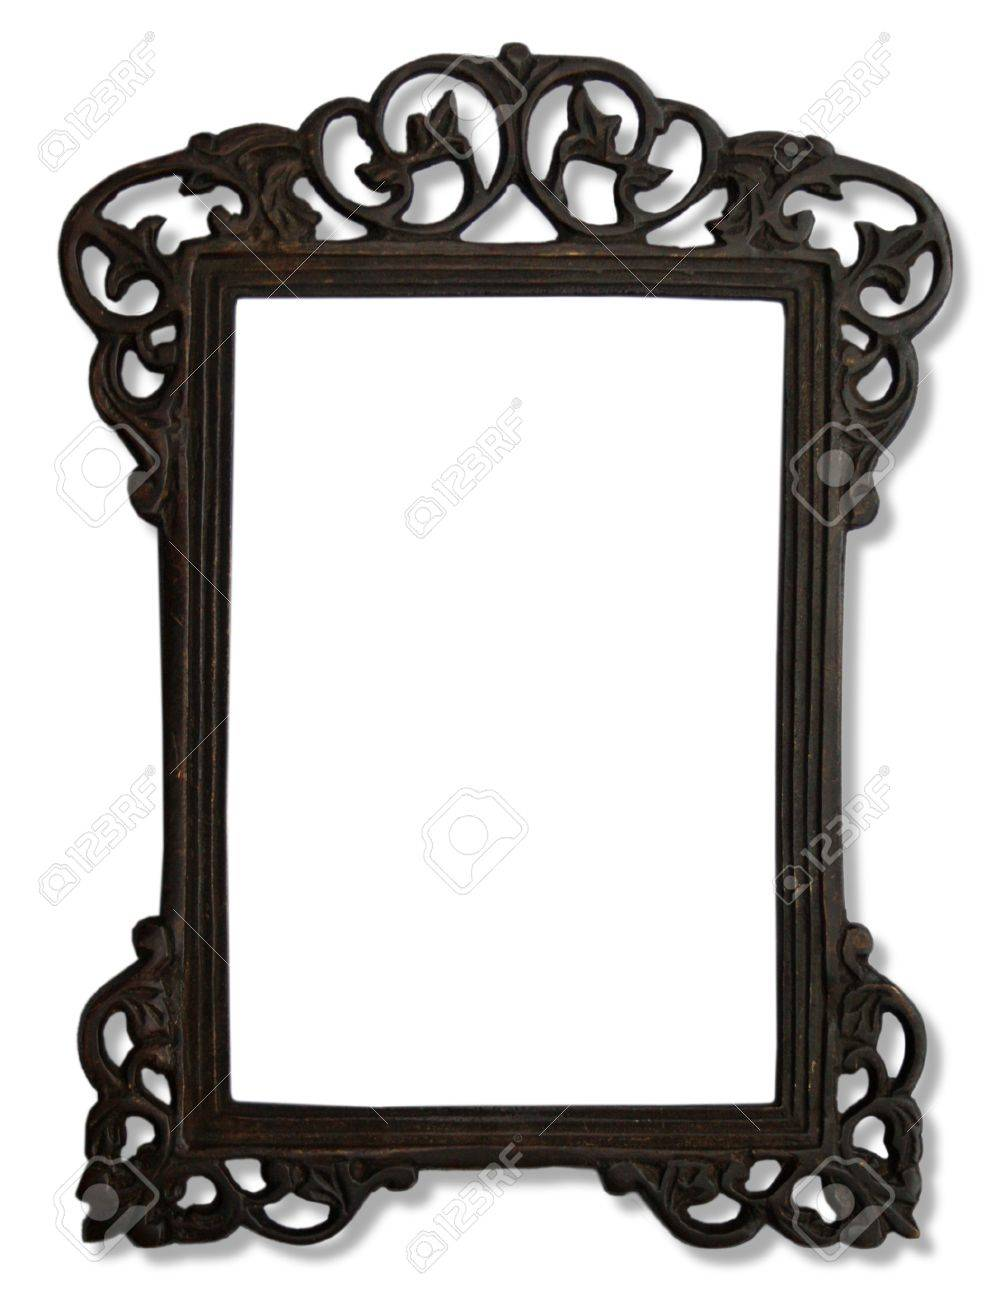 Vintage Metal Photo Frame Stock Photo, Picture And Royalty Free ...